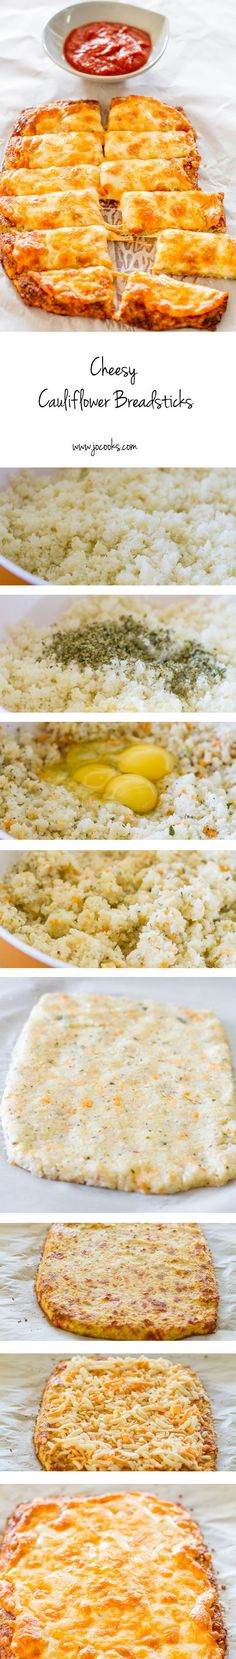 very good Cheesy Cauliflower Breadsticks – gluten free, low carb, cheesy cauliflower breadsticks! This recipe is a winner and a keeper! by lindsey Gluten Free Recipes, Low Carb Recipes, Vegetarian Recipes, Cooking Recipes, Healthy Recipes, Scd Recipes, Flour Recipes, Healthy Cauliflower Recipes, Low Carb Califlower Recipes